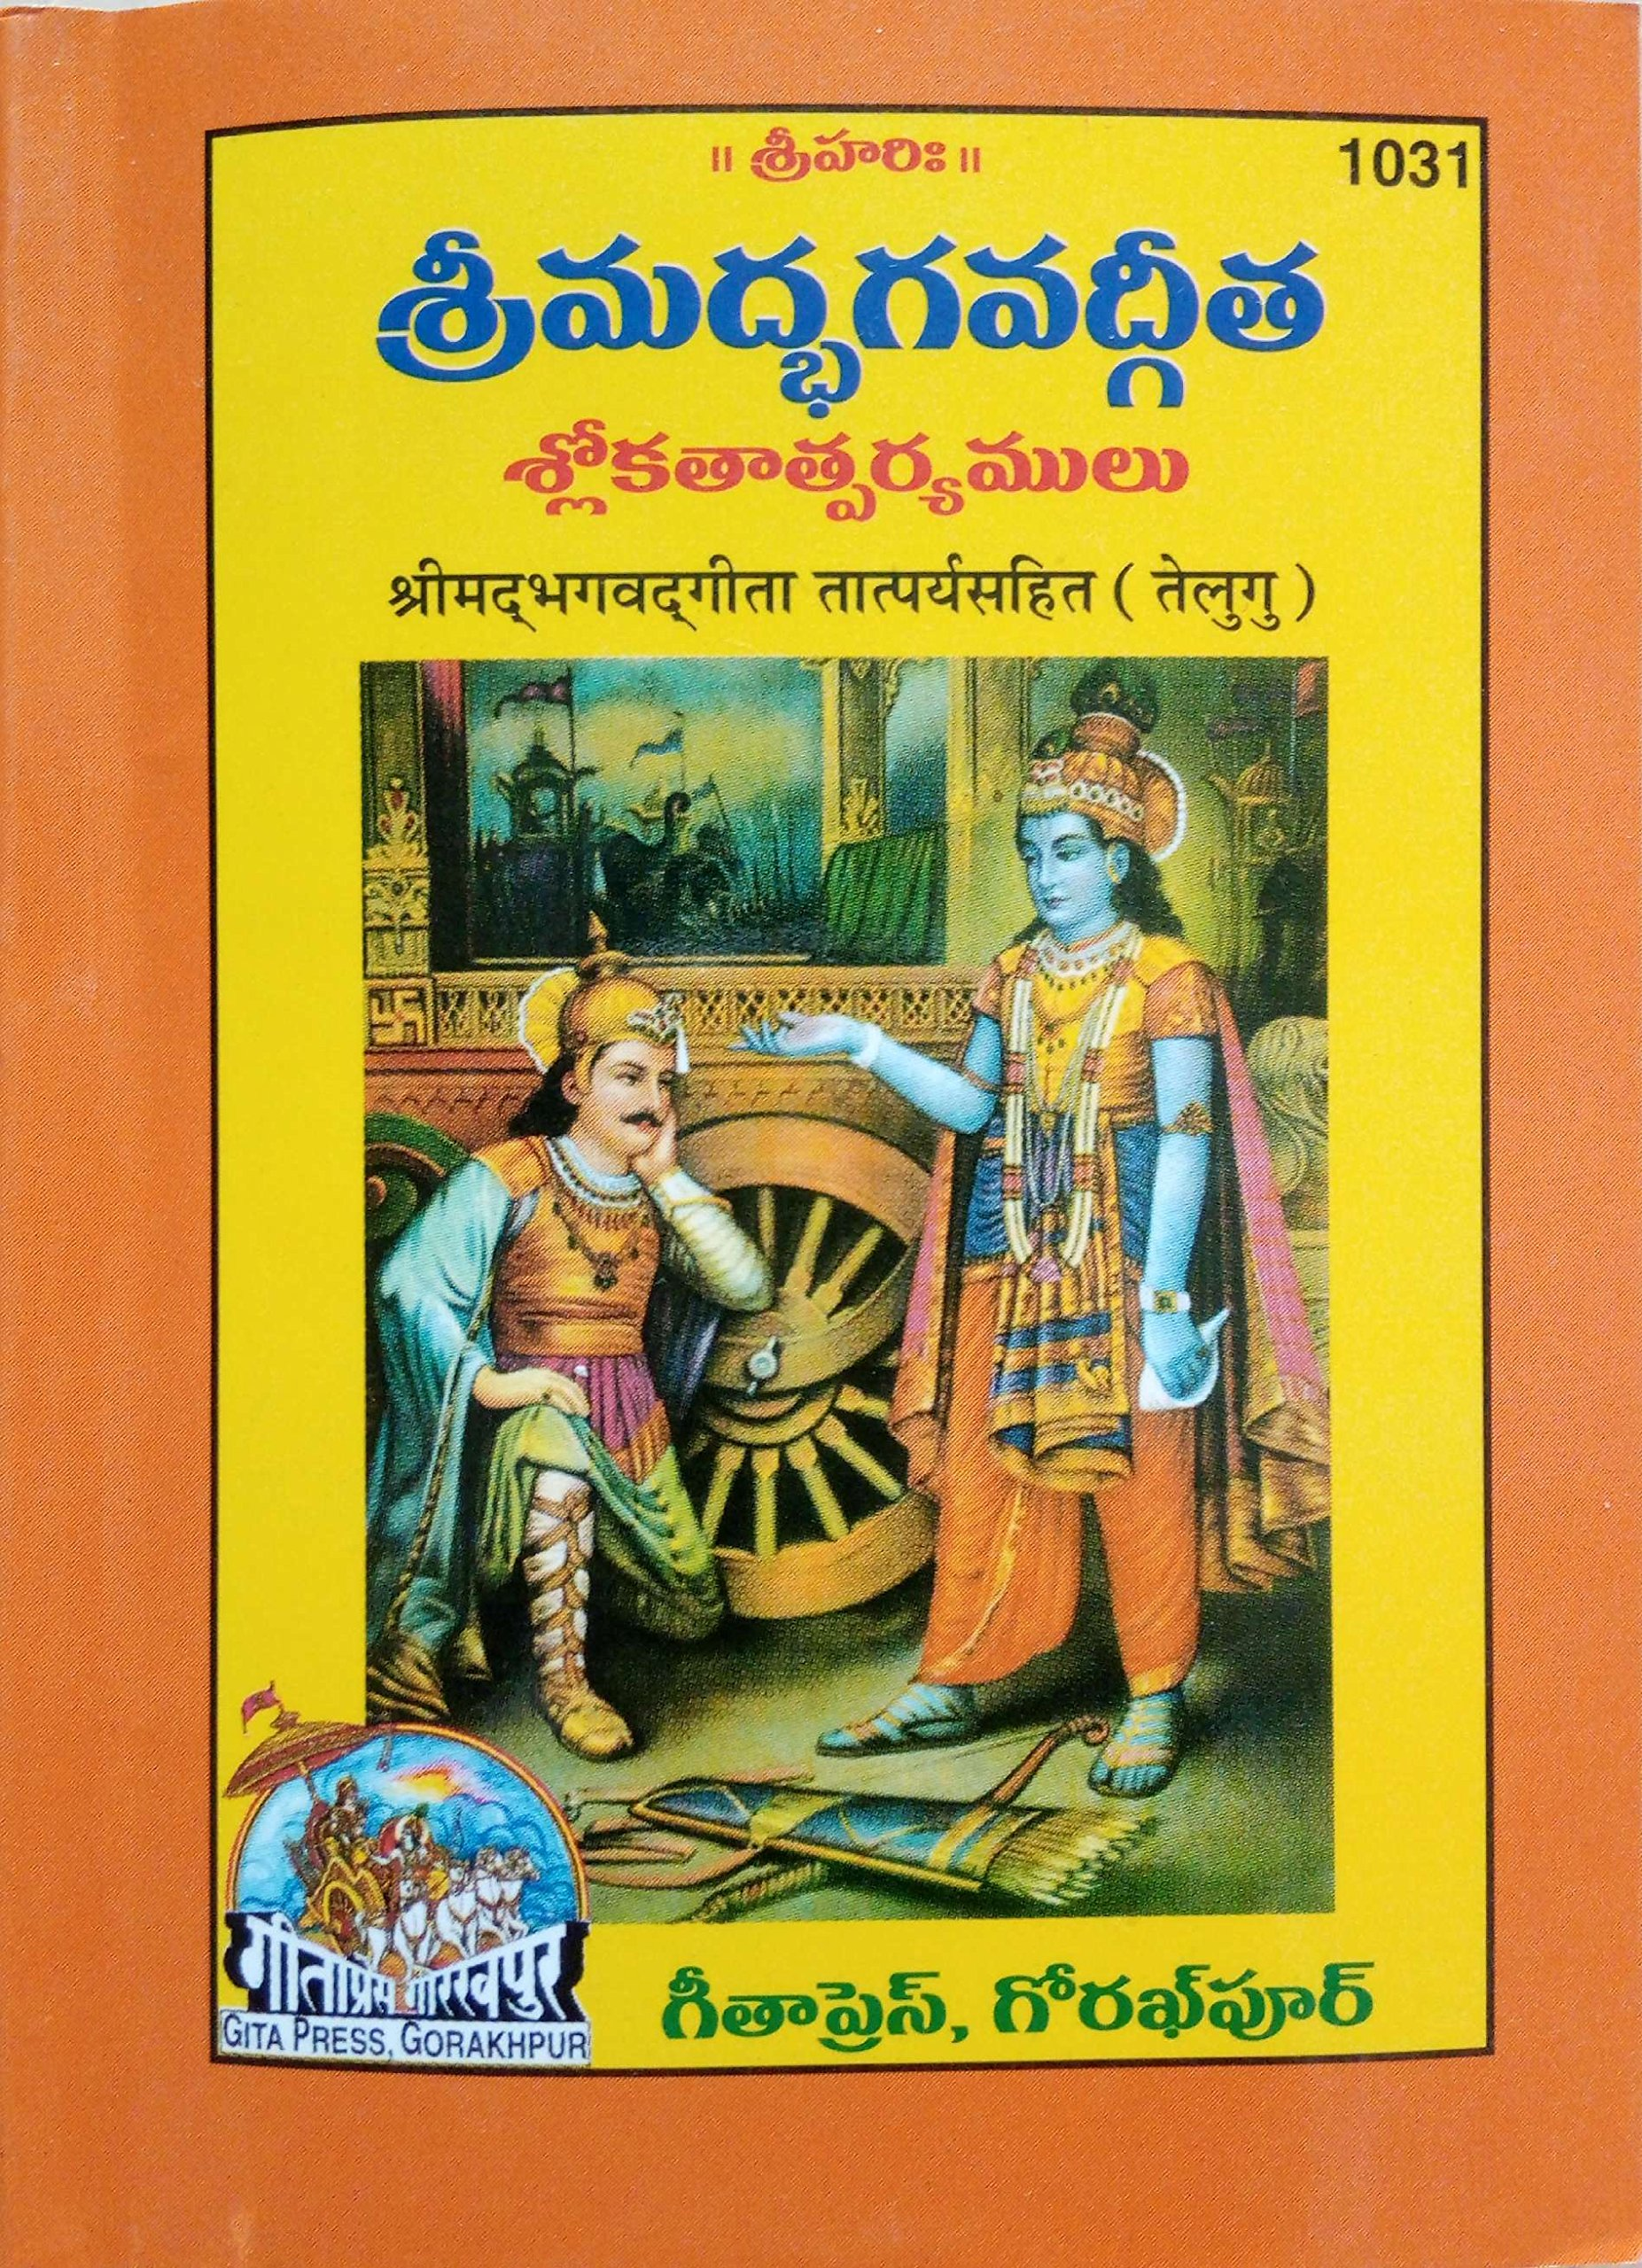 Buy Shrimadbhagvadgita With Meaning Telugu Pack Of 4 Same Books Book Online At Low Prices In India Shrimadbhagvadgita With Meaning Telugu Pack Of 4 Same Books Reviews Ratings Amazon In